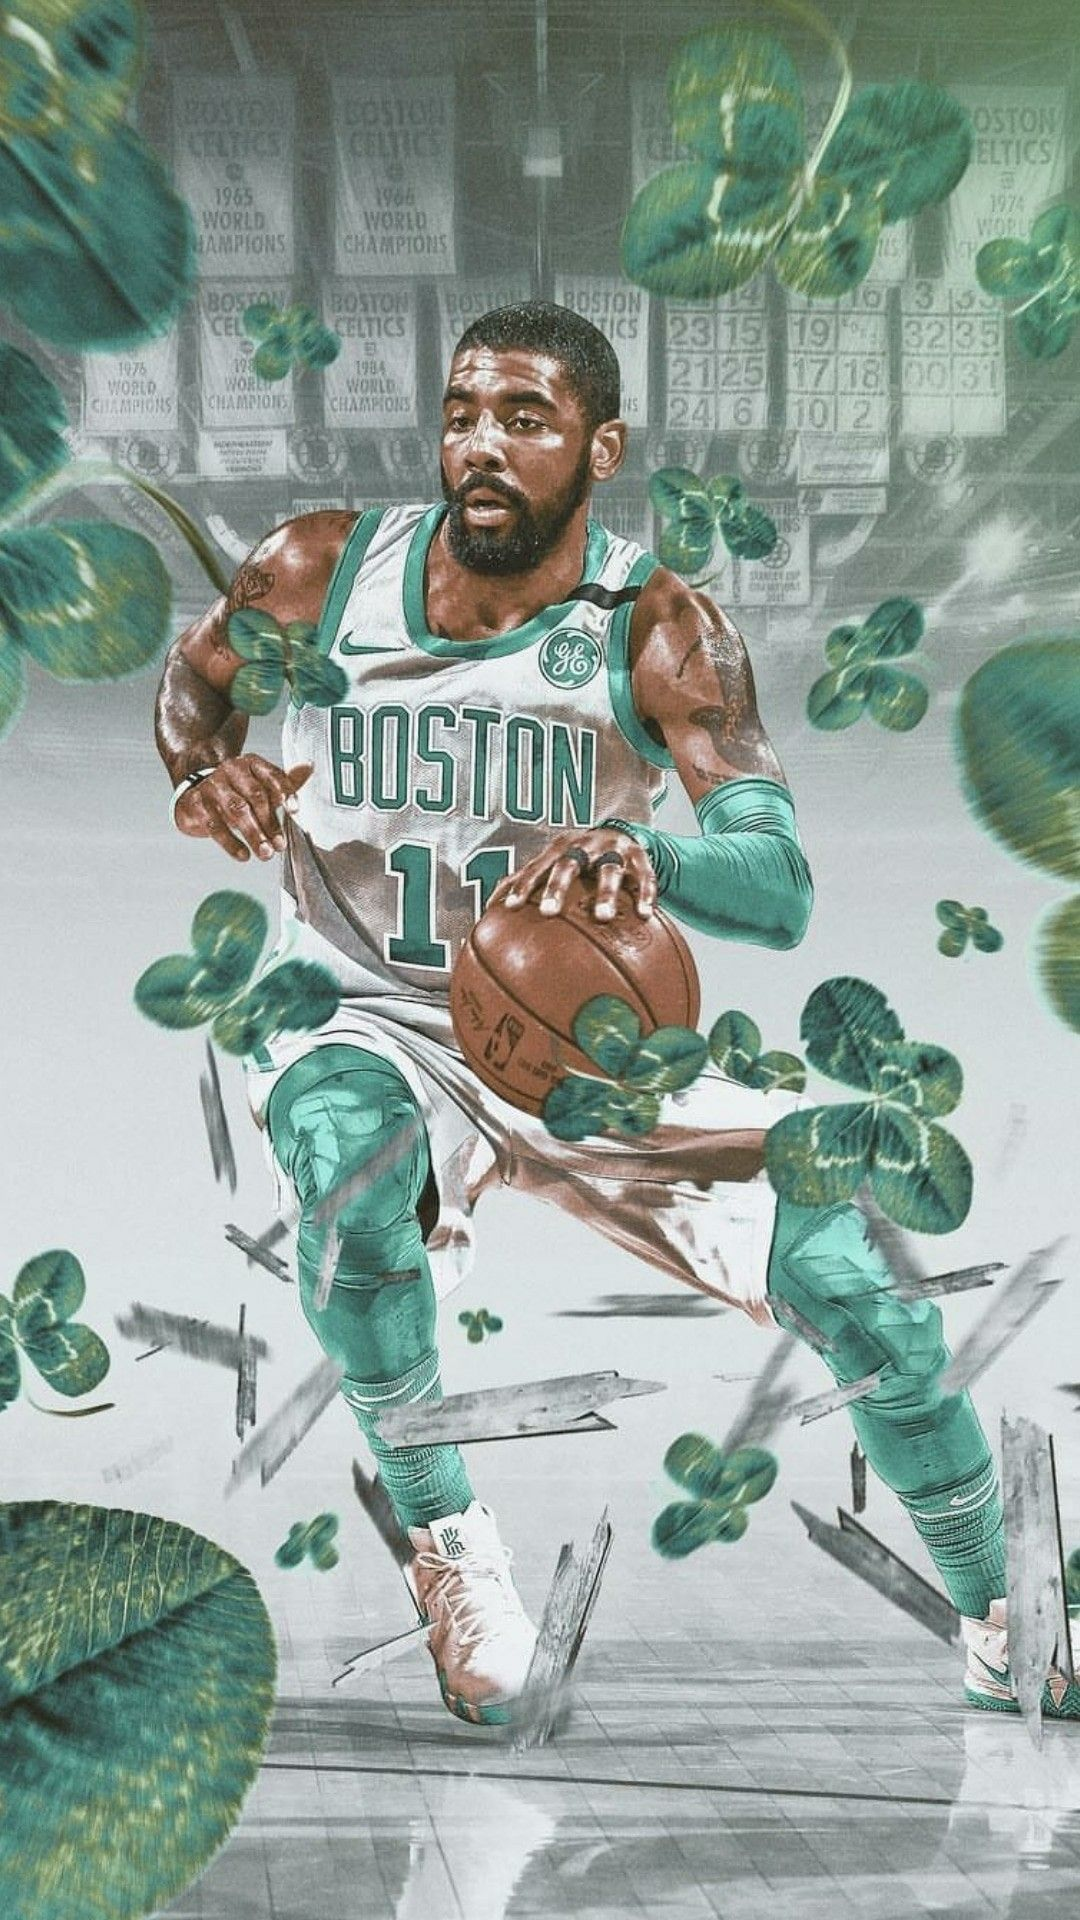 1080x1920 Kyrie Irving Wallpaper | BASKETBALL | NBA, Basketball, Kyrie irving